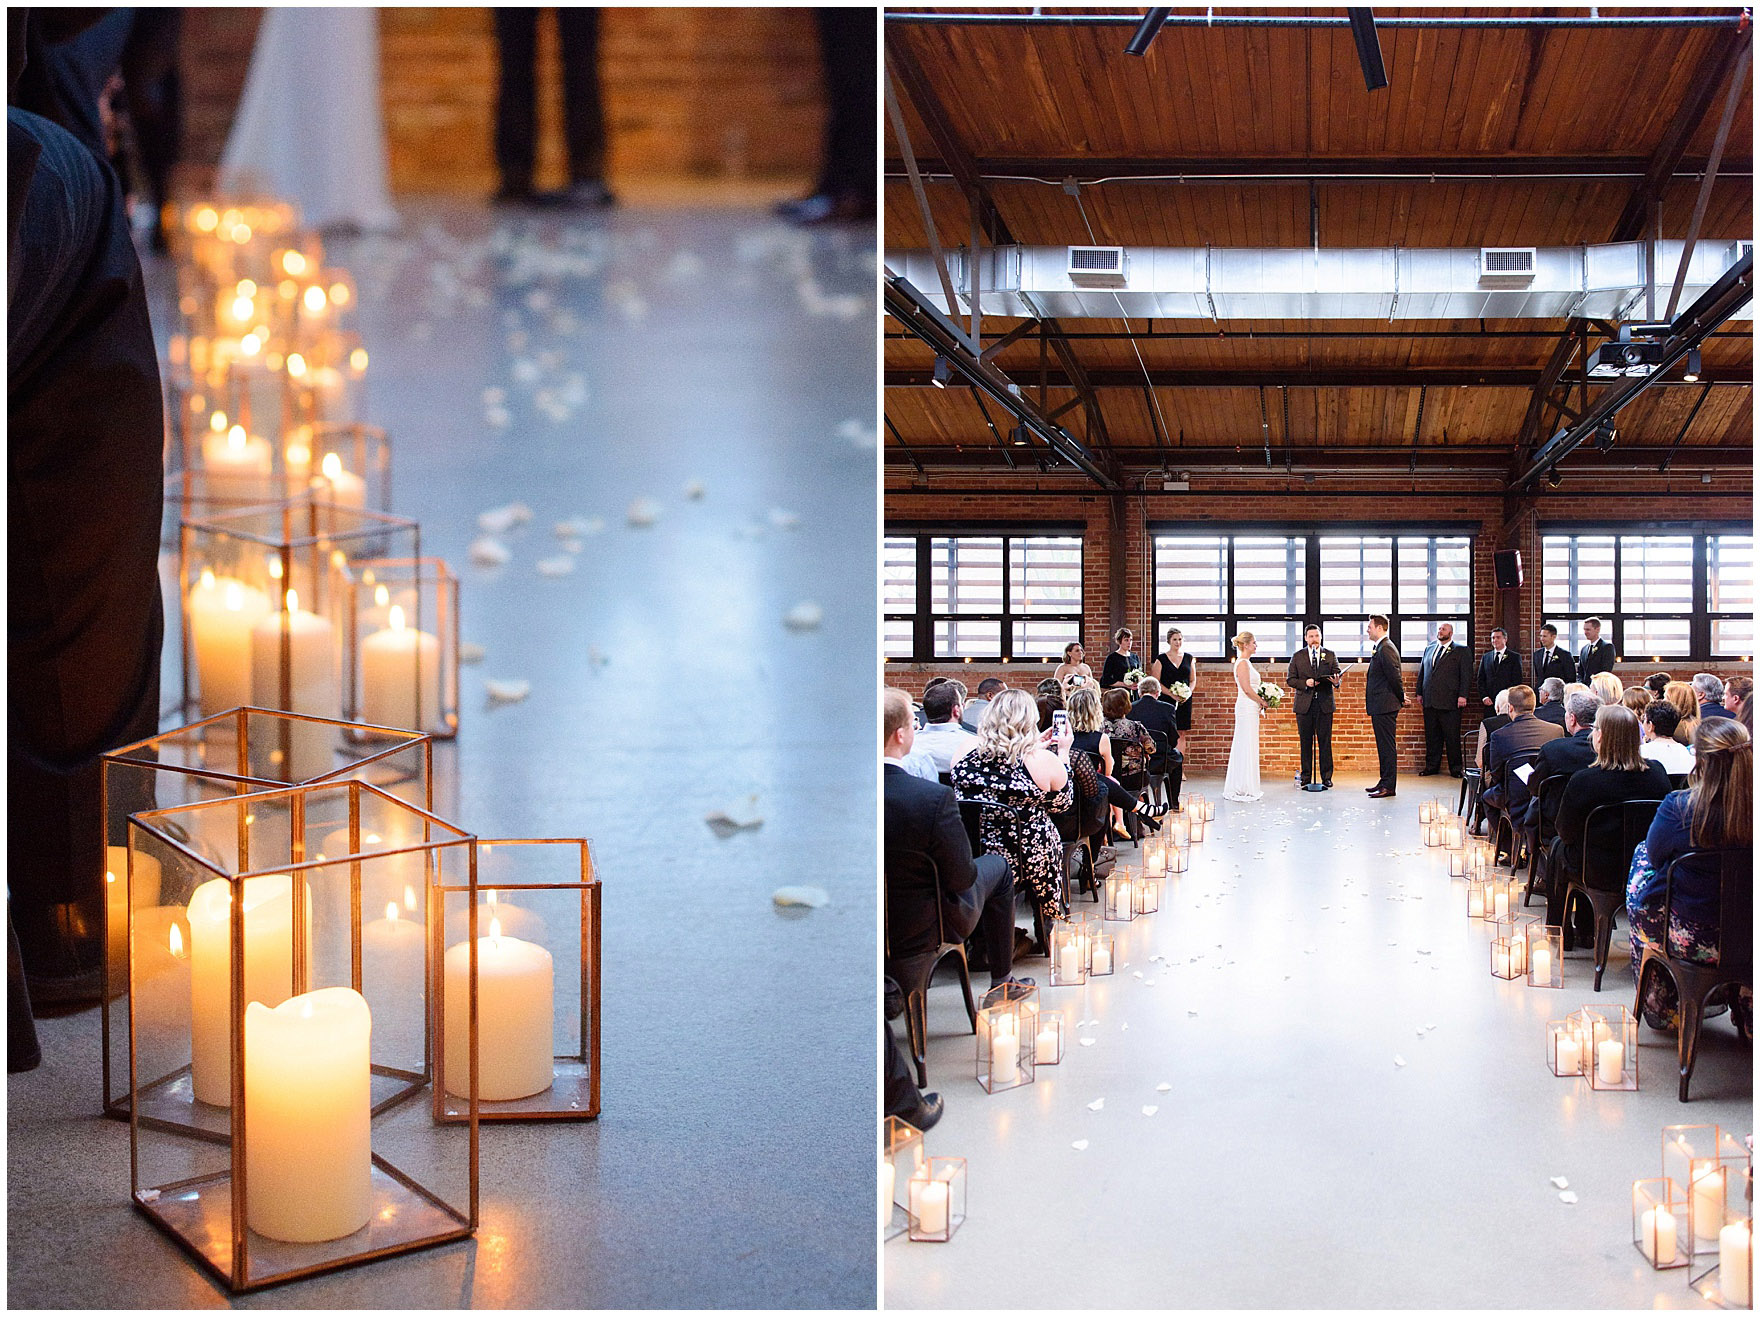 A bride and groom say their vows in front of a candlelit aisle during the ceremony for an Ovation Chicago wedding.